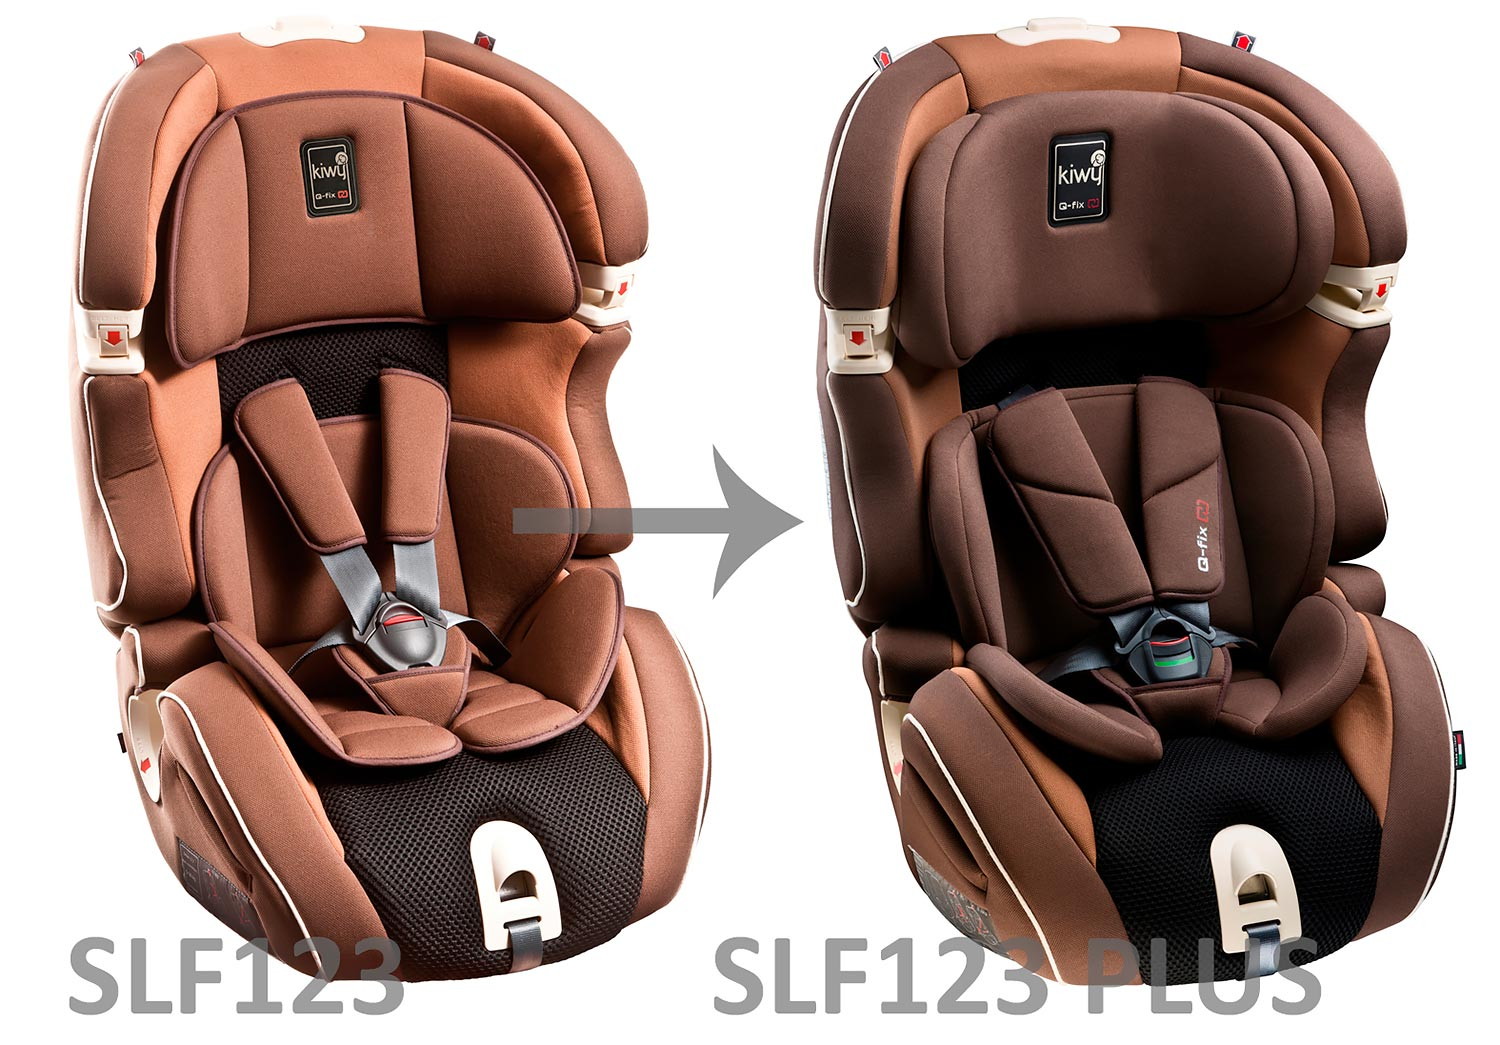 Kiwy SLF 123 vs SLF123 Plus